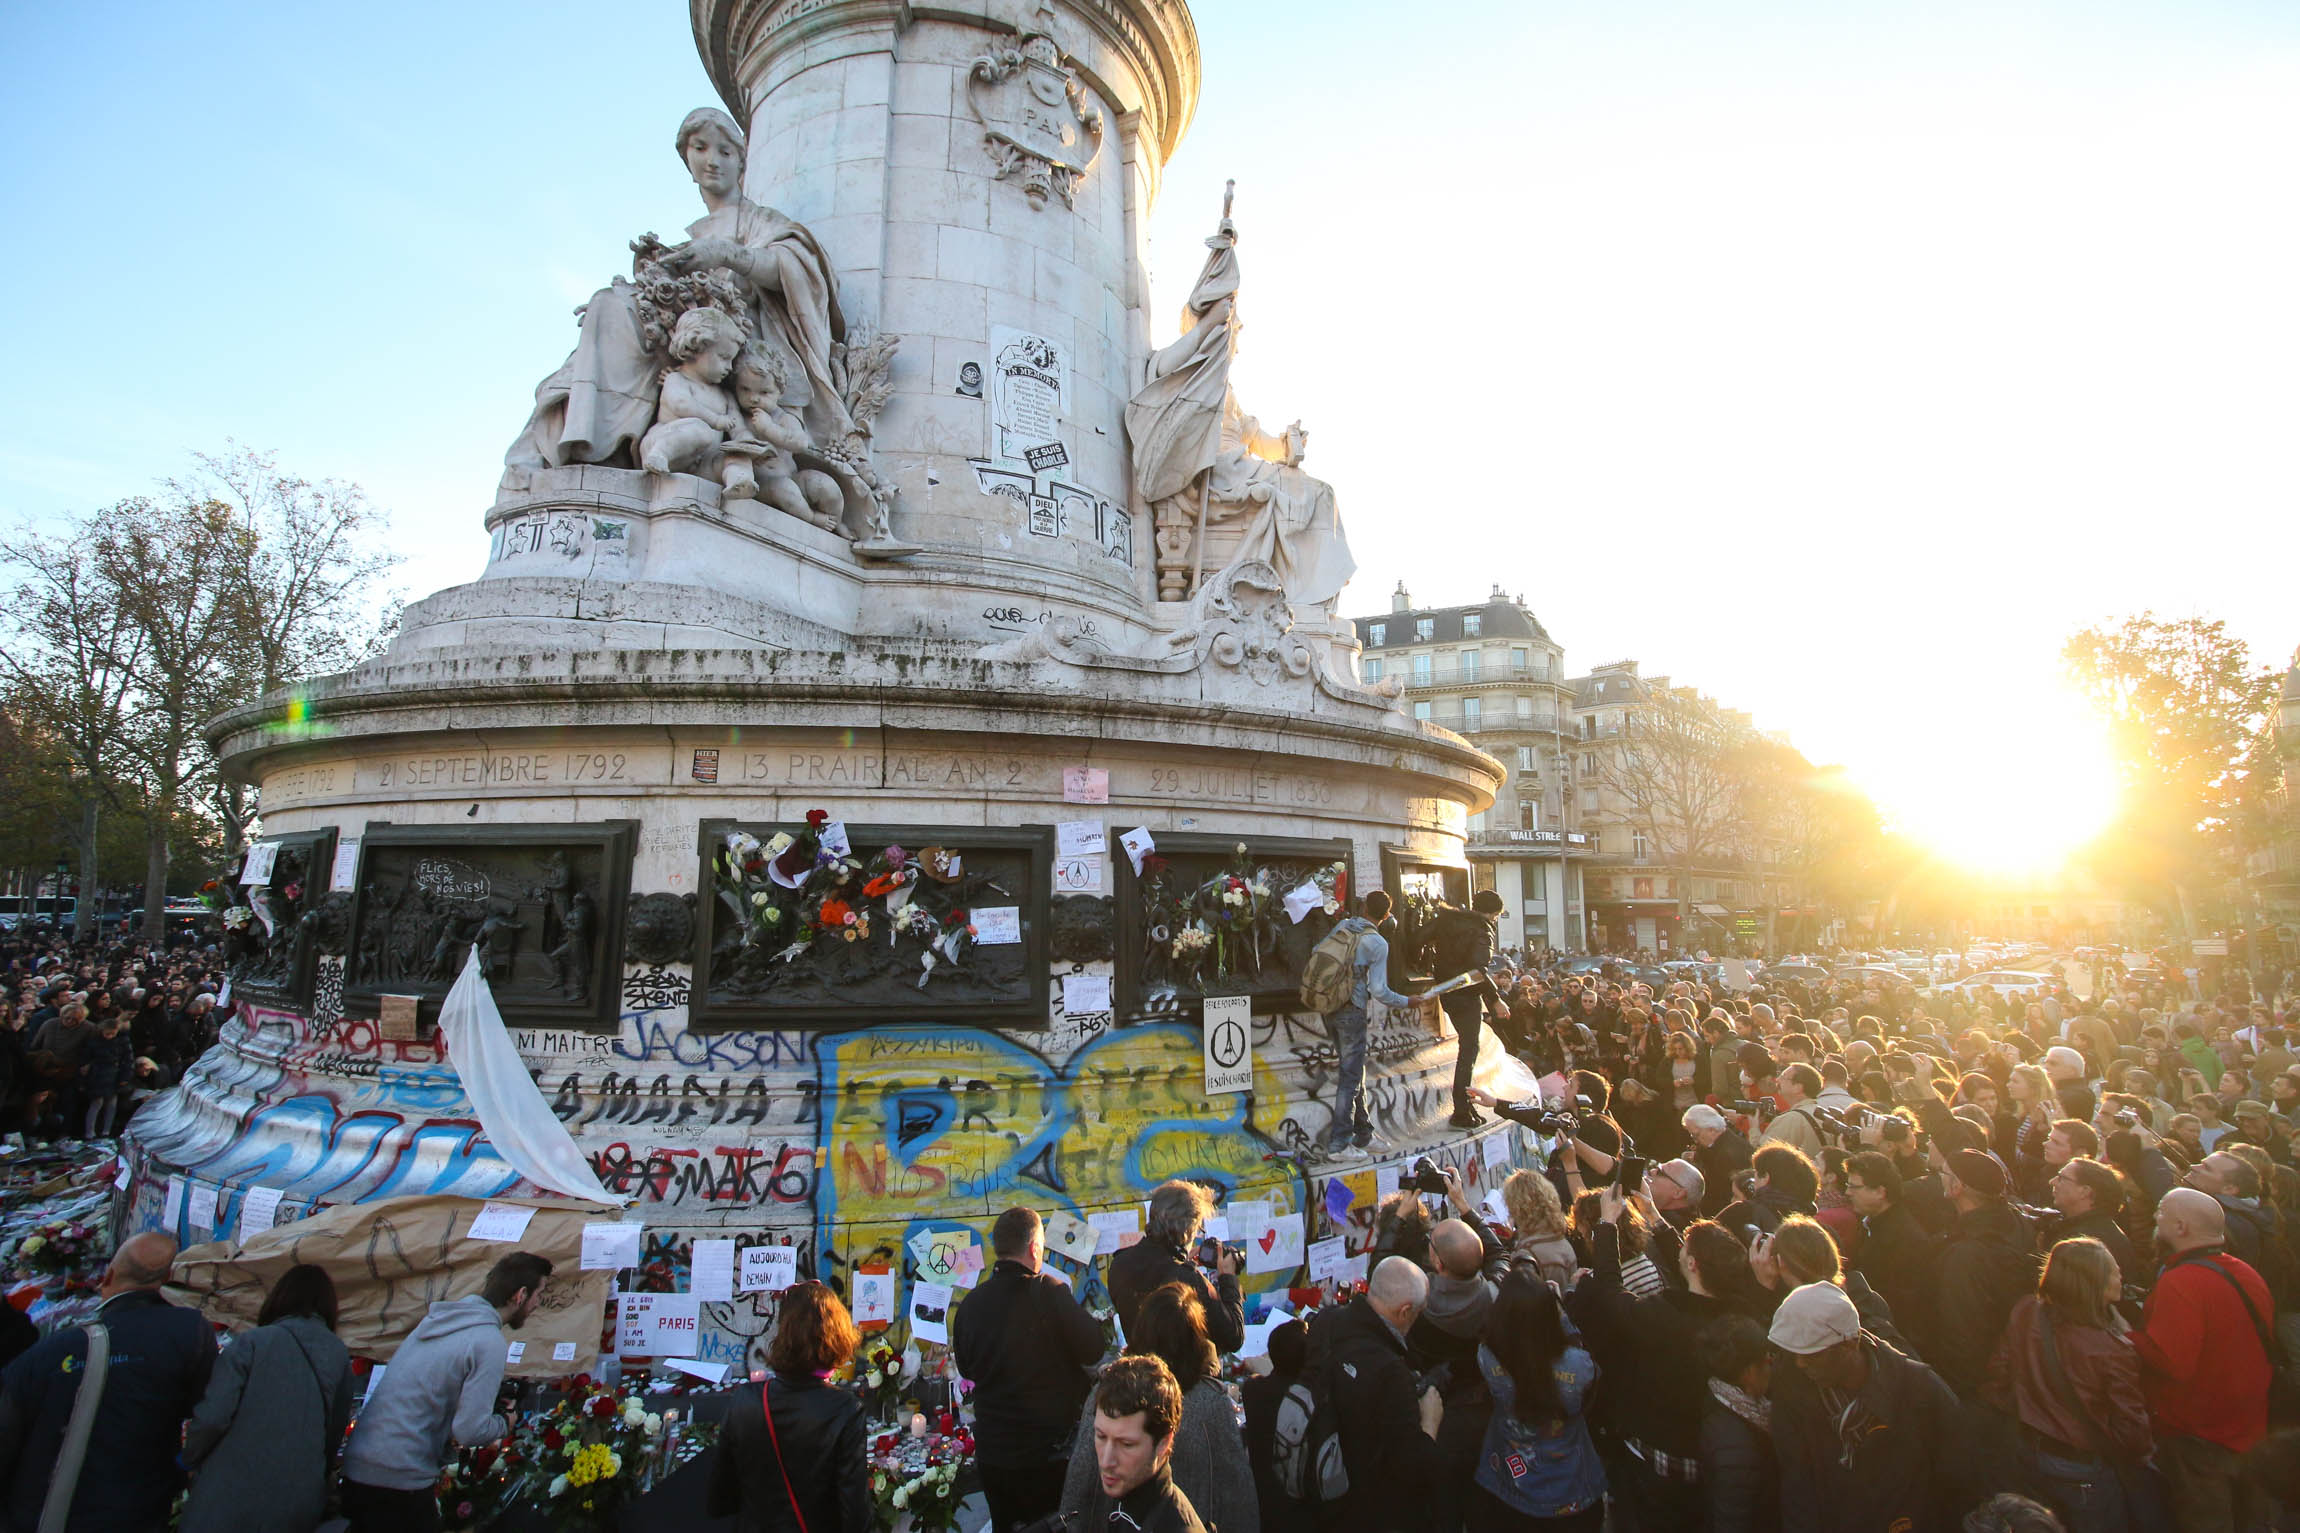 People lay flowers and paper with messages on Place de la Republique, Sunday, November 15, 2015.